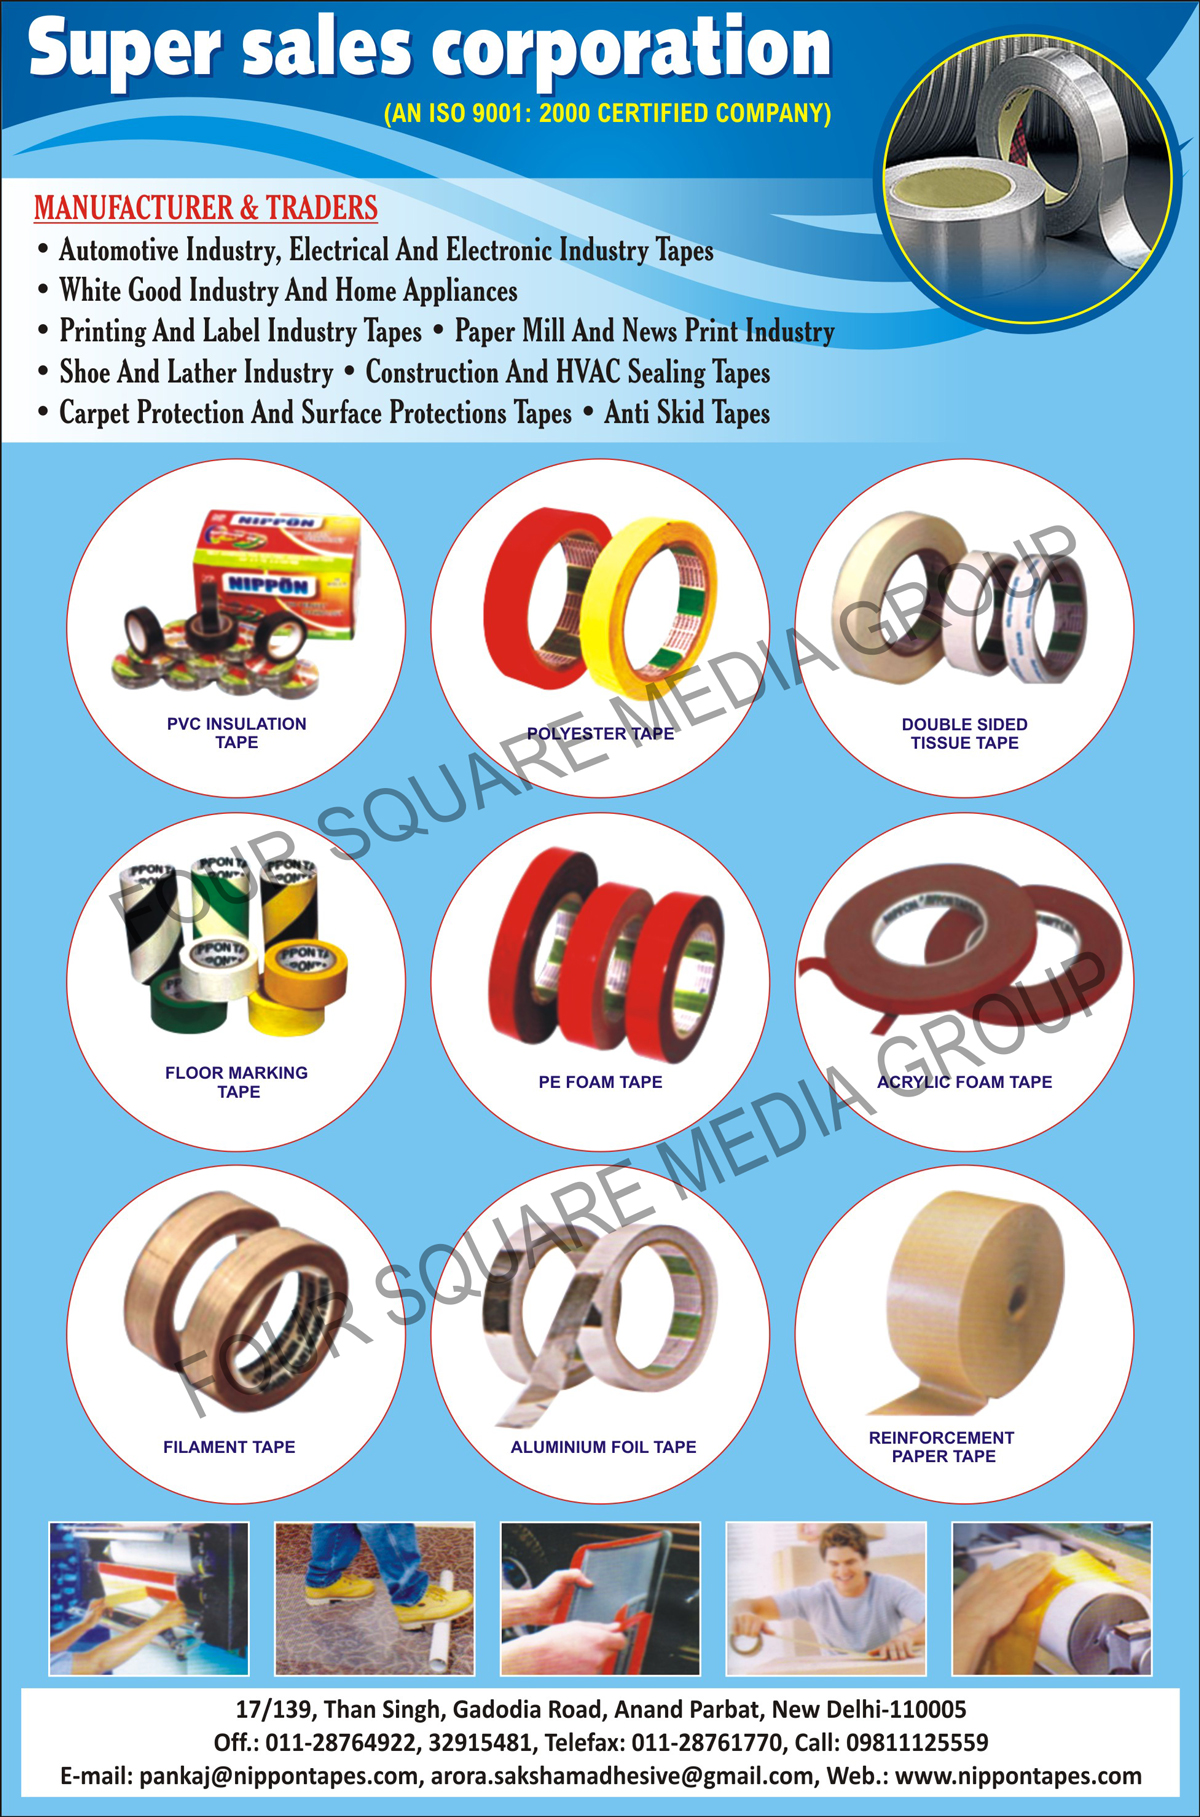 PVC Insulation Tapes, Polyester Tapes, Double Sided Tissue Tapes, Floor Marking Tapes, PE Foam Tapes, Acrylic Foam Tapes, Filament Tapes, EVA Foam Tapes, Electrical Tapes, Electronic Tapes, Printing Industry Tapes, Label Industry Tapes, Lather Industry Tapes, Construction Tapes, Hvac Sealing Tapes, Carpet Protection Tapes, Surface Protection Tapes, Anti Skid Tapes, Shoe Industry Tapes, Paper Mill Industry Tapes, Paper Print Industry Tapes, Carpet Protection Tapes, Surface Protection Tapes, Anti Skid Tapes, Reinforcement Paper Tapes, White Good Industry Tapes, Home Appliance Tapes, Aluminium Foil Tapes, Automotive Industry Tapes, News Print Industry Tapes, Self Adhesive Tapes